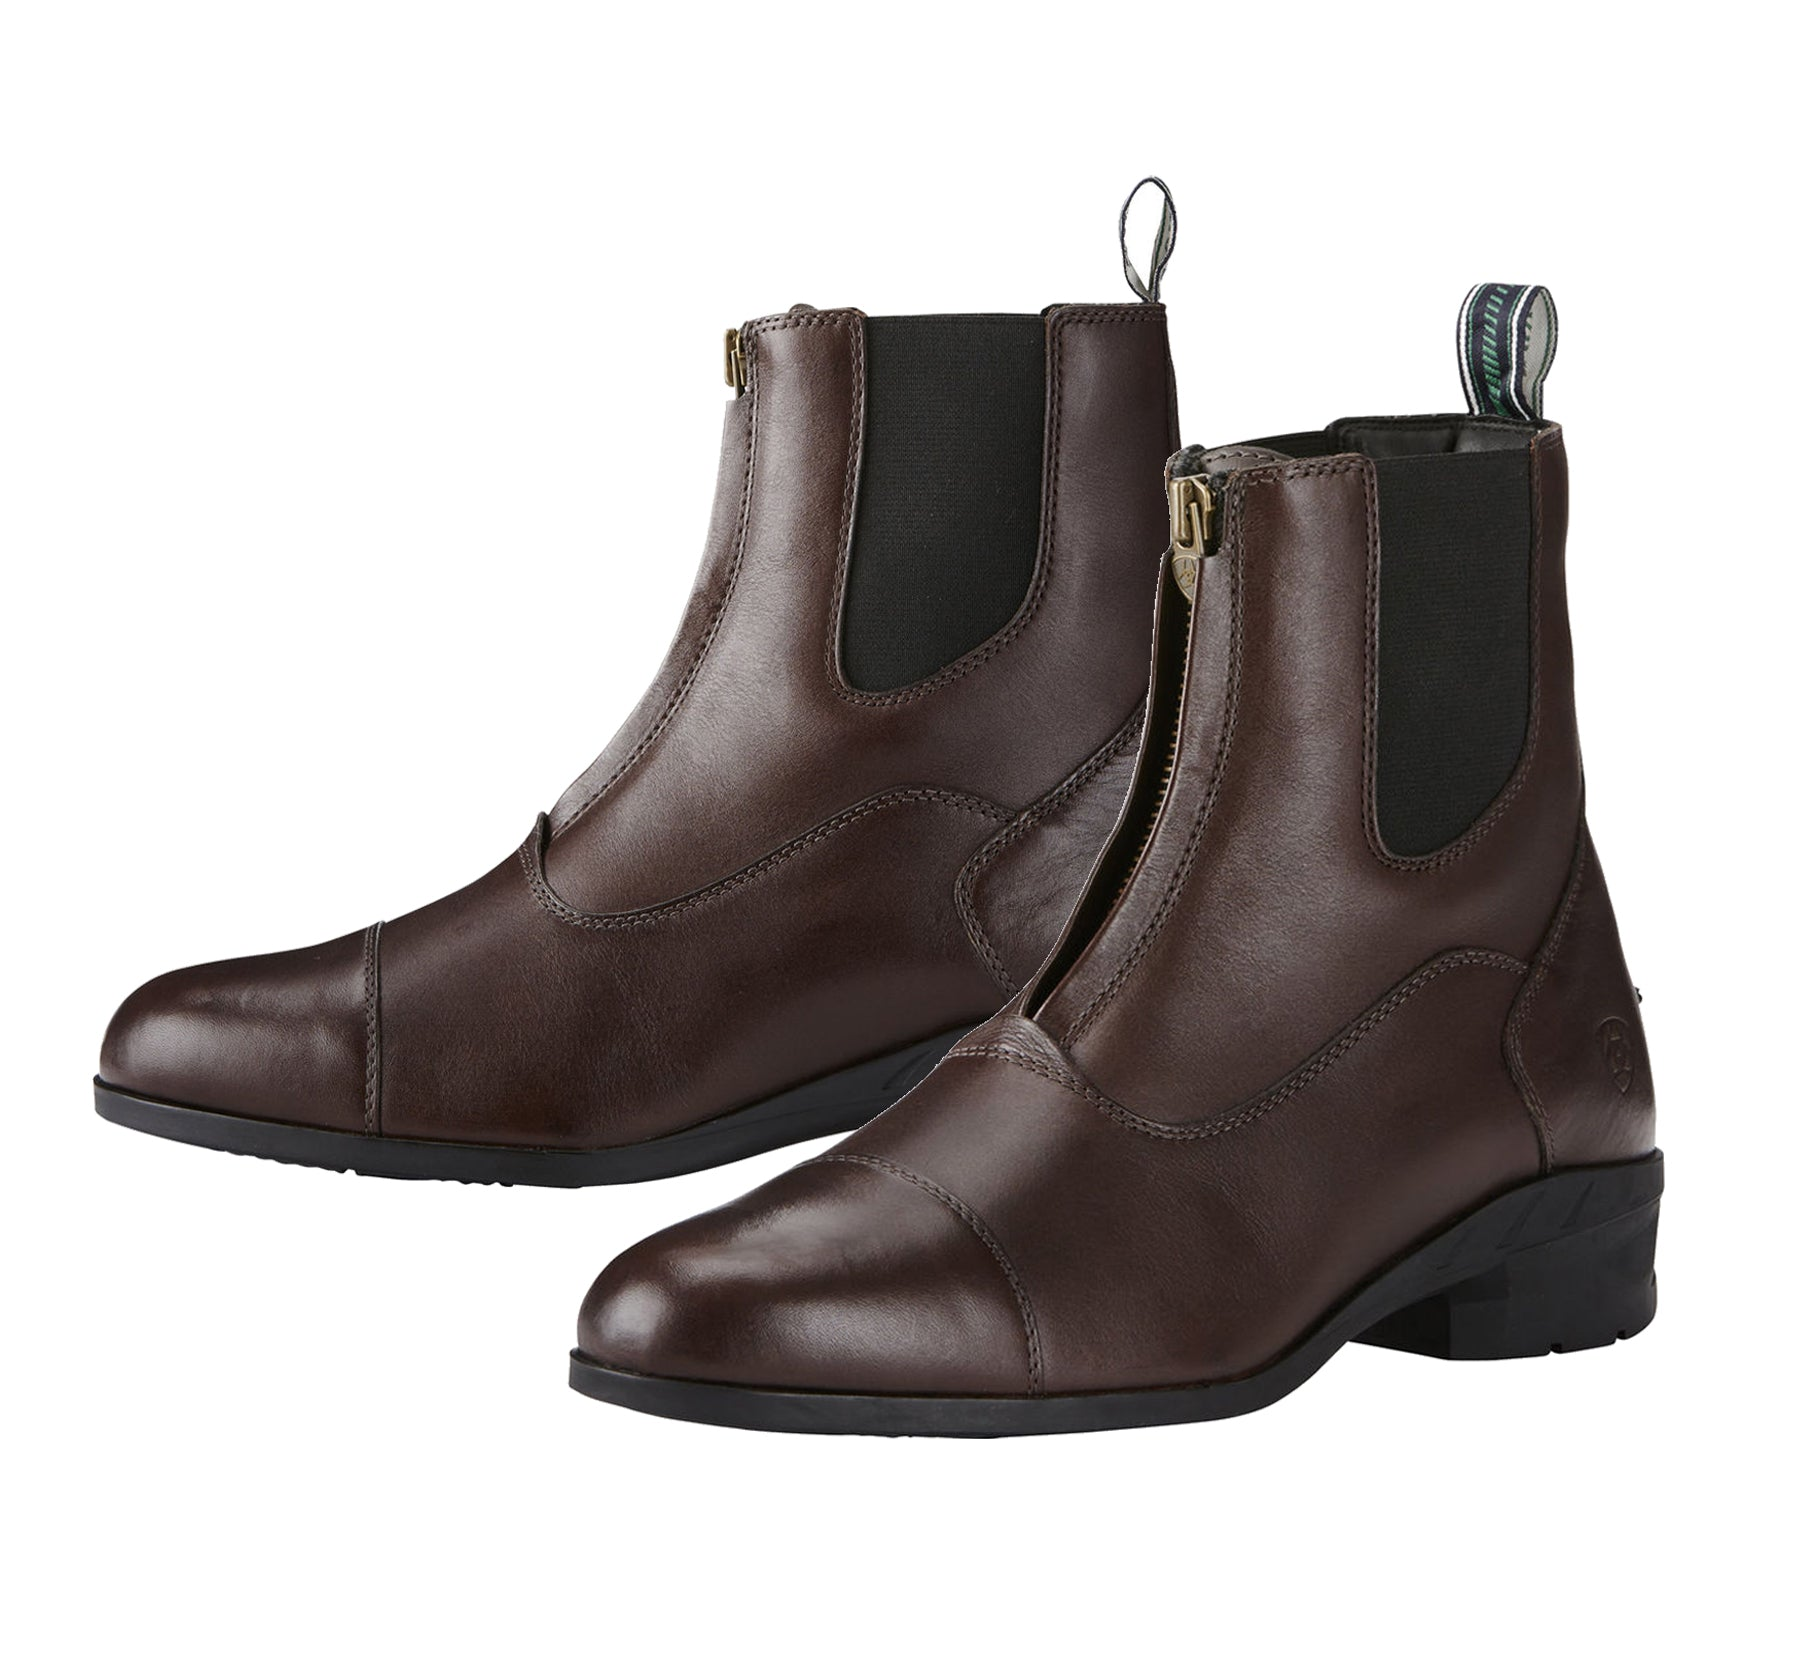 Ariat Heritage IV Women's Zip Paddock Boots - North Shore Saddlery